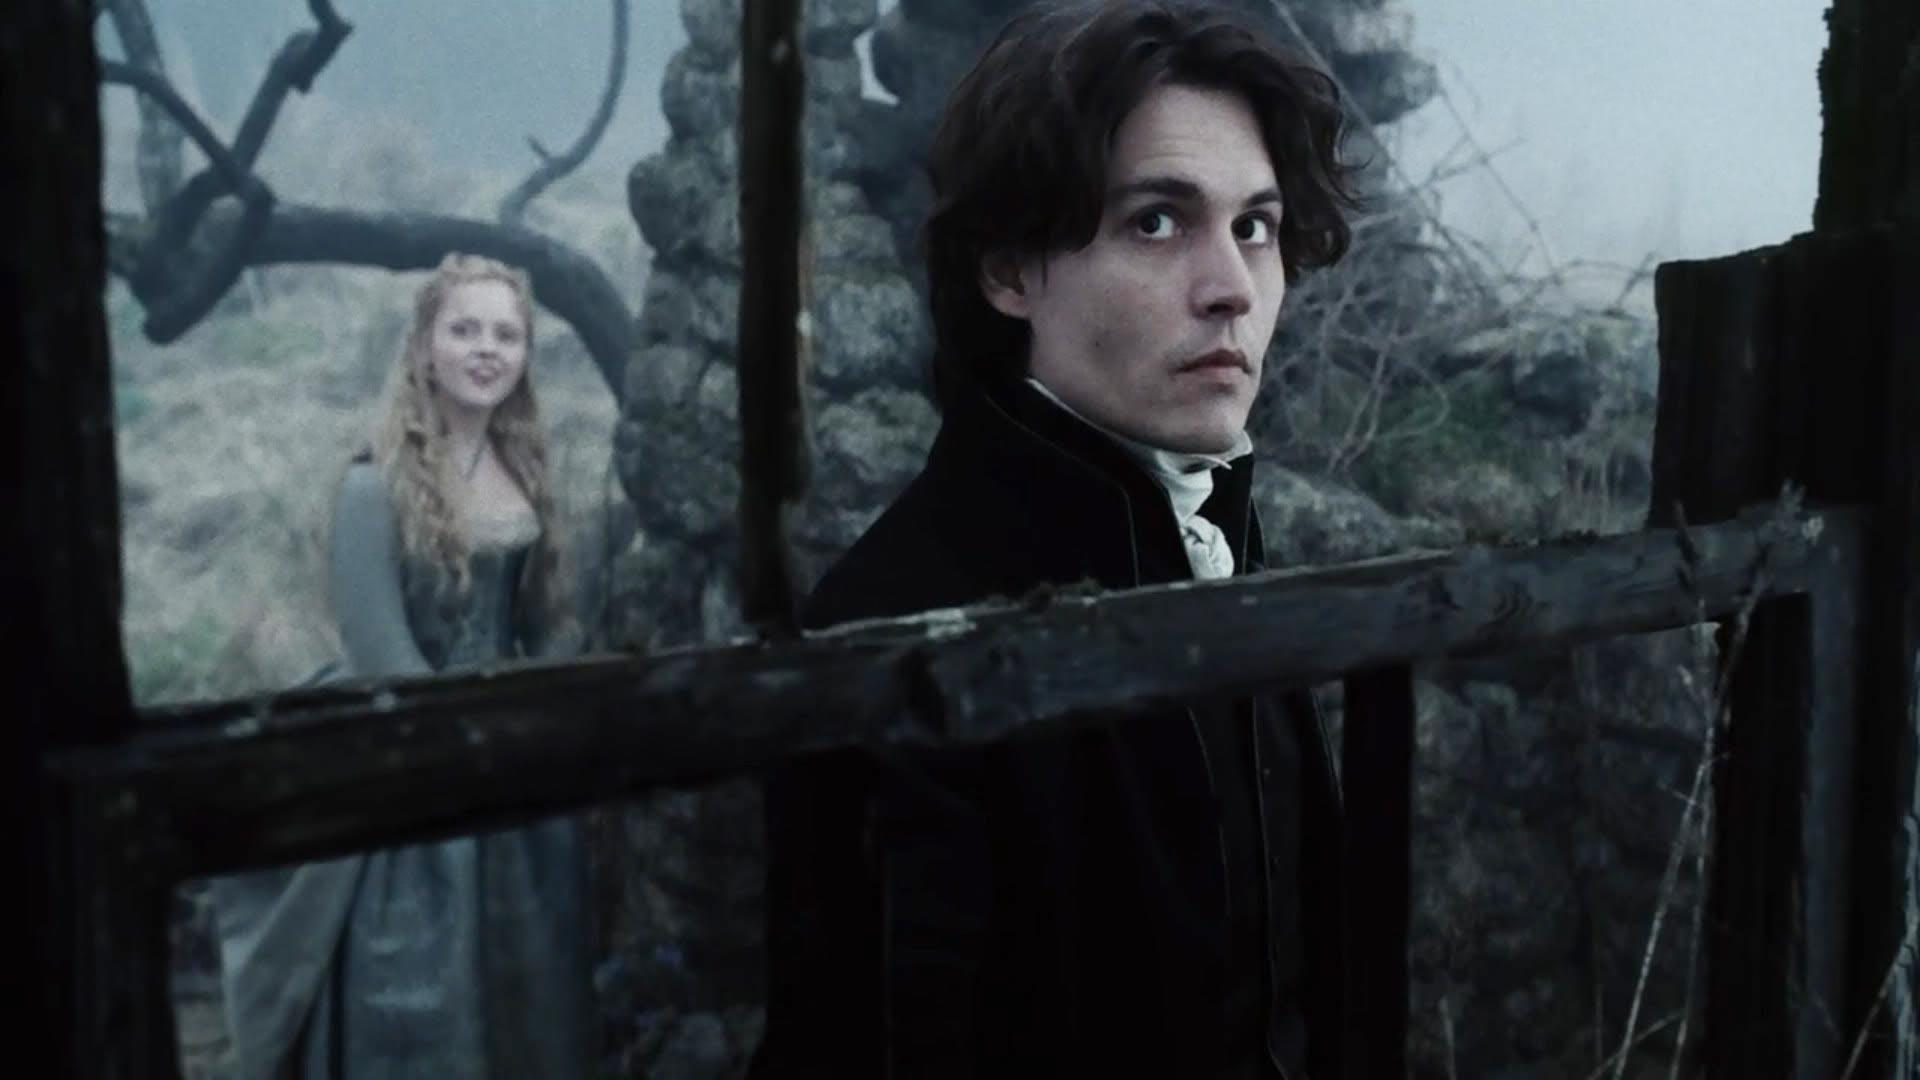 Le film de Tim Burton Sleepy Hollow bientôt adapté en série ?